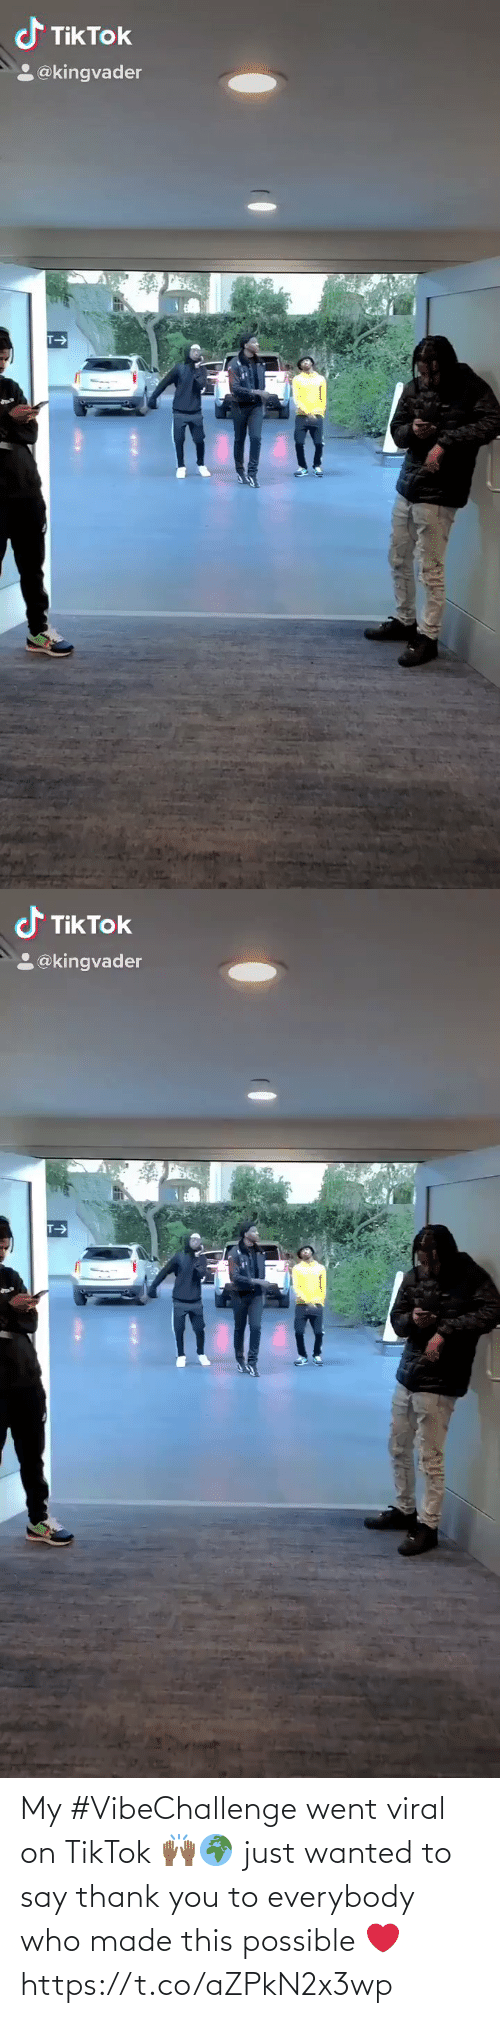 say: My #VibeChallenge went viral on TikTok 🙌🏾🌍 just wanted to say thank you to everybody who made this possible ❤️ https://t.co/aZPkN2x3wp